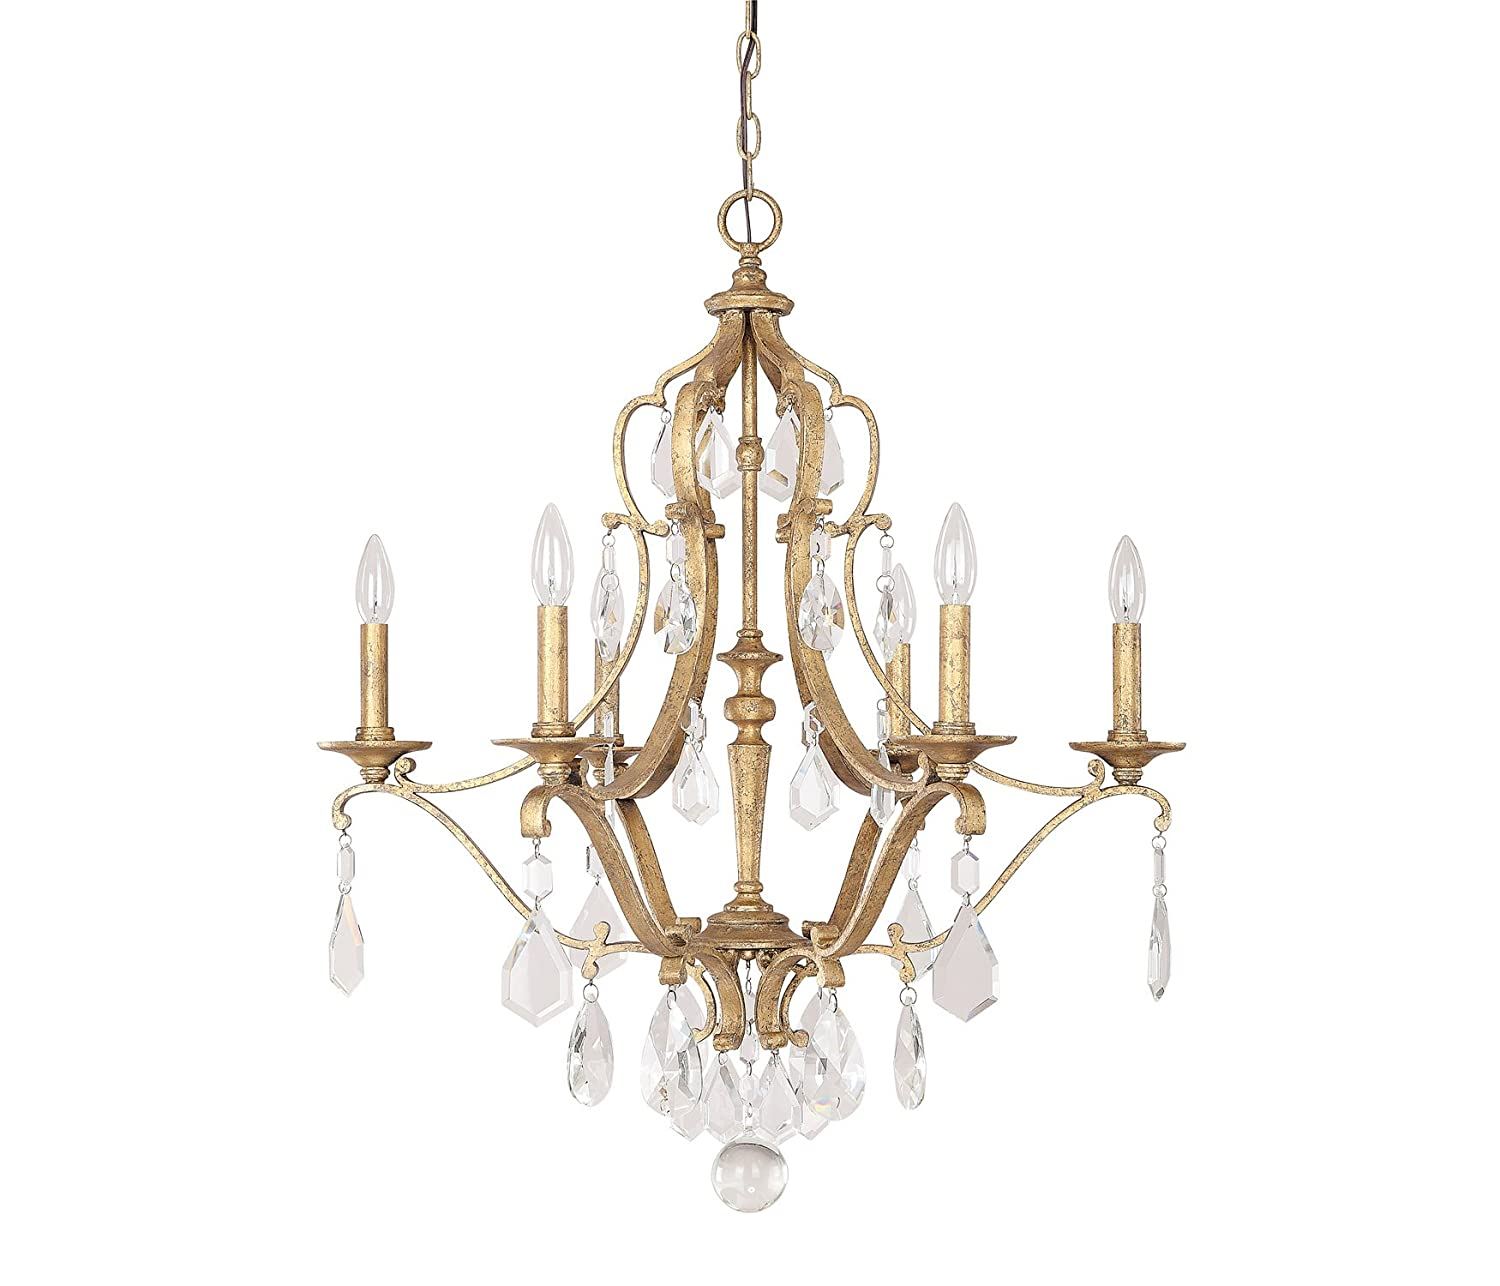 Capital lighting 4186ag cr blakely 6 light chandelier antique gold capital lighting 4186ag cr blakely 6 light chandelier antique gold finish with clear crystal accents amazon arubaitofo Image collections